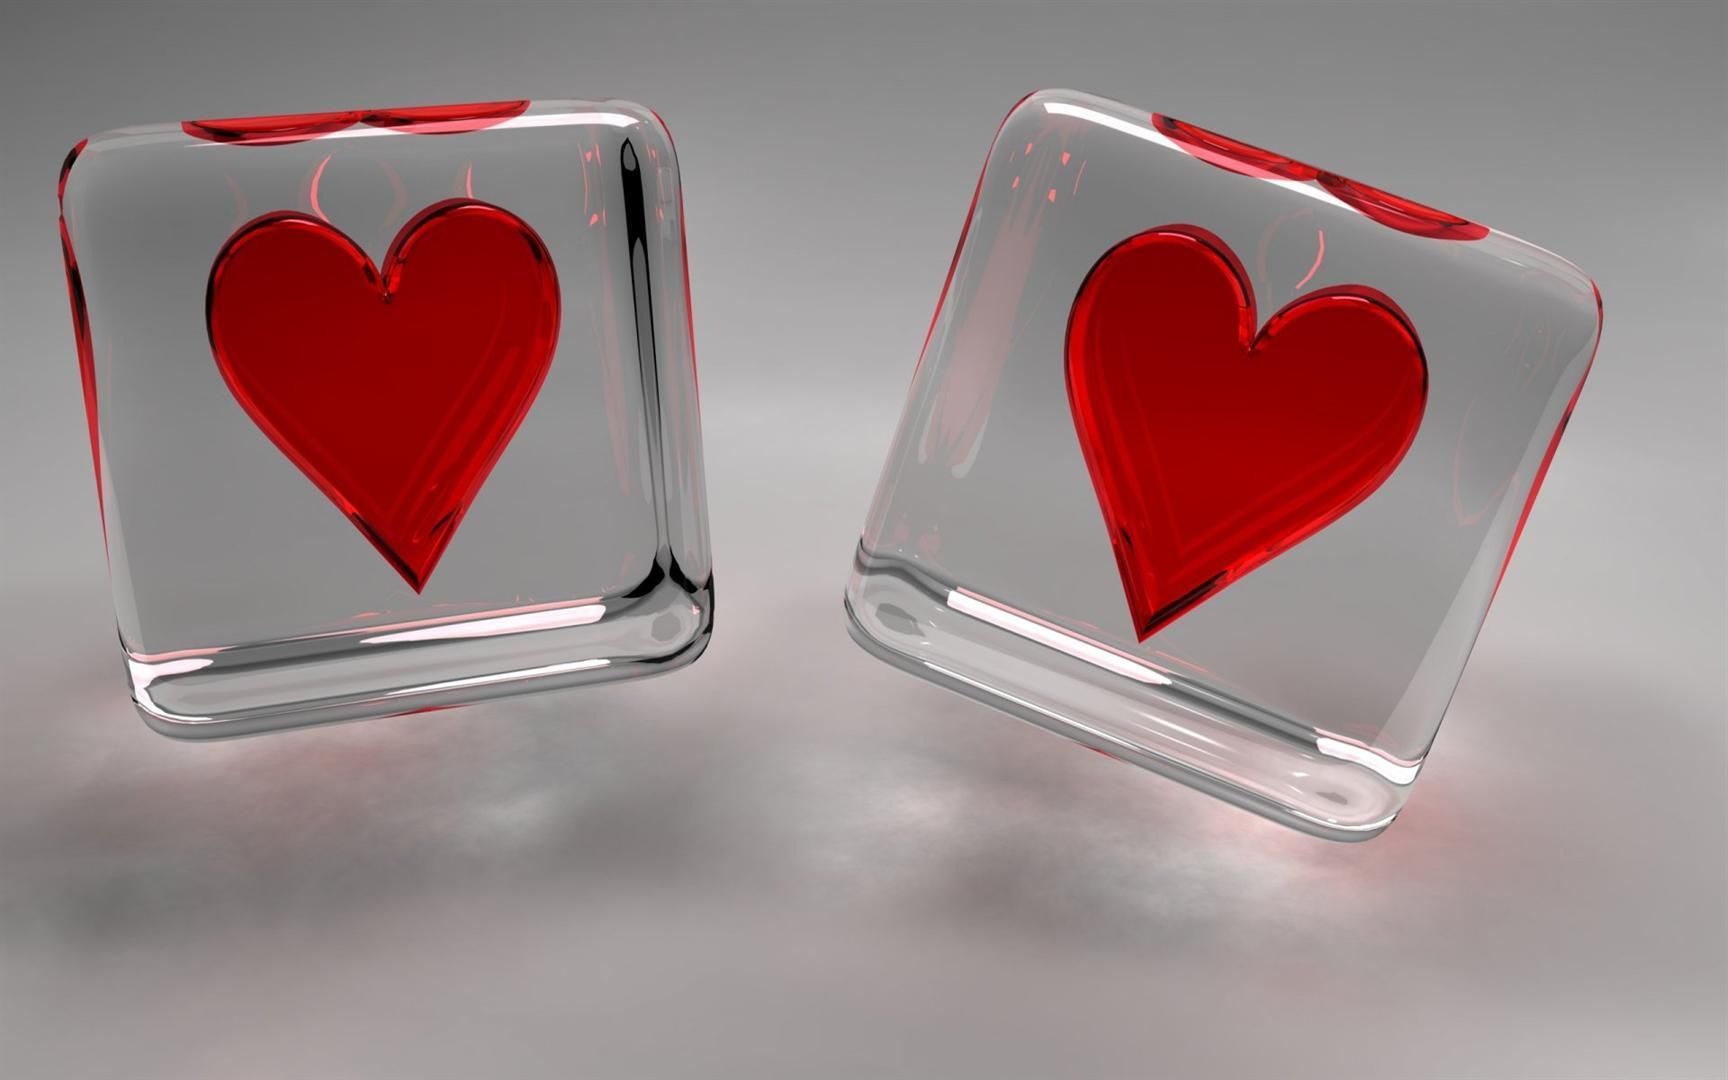 3d Love Hearts Wallpapers Hd Images New Heart Wallpaper Love Wallpaper Heart Wallpaper Hd